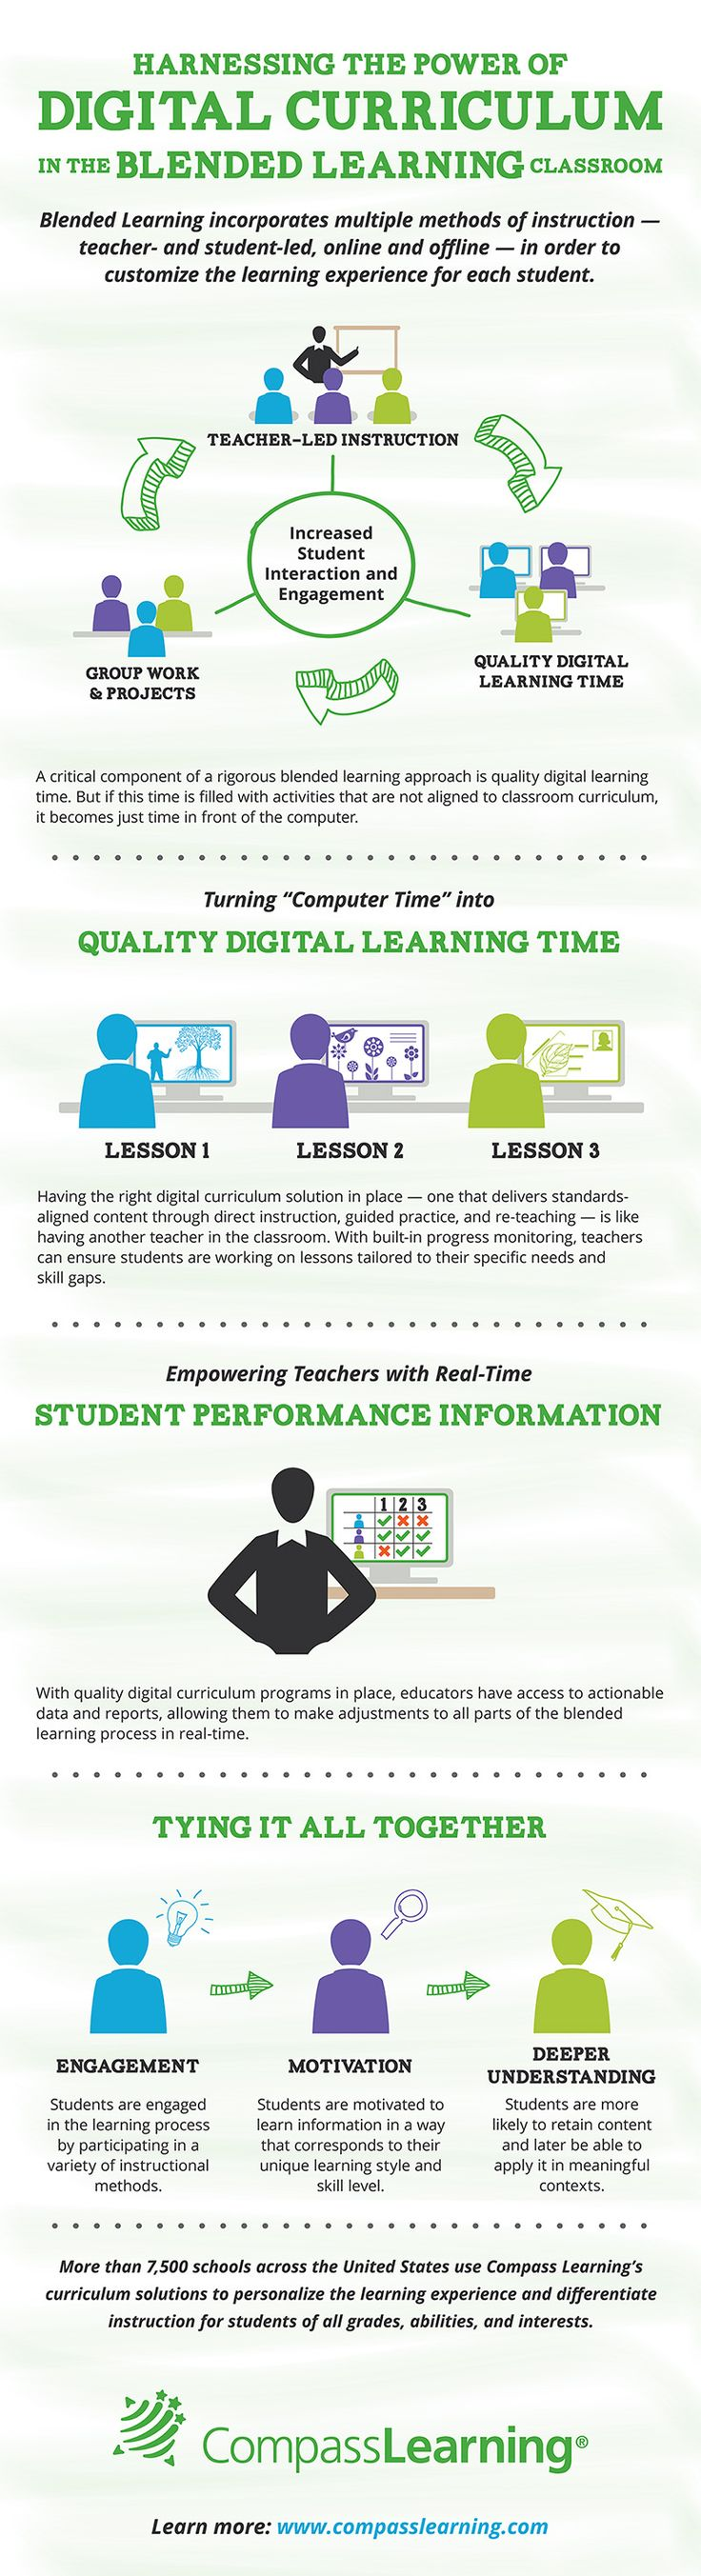 Harnessing-The-Power-of-Digital-Curriculum-In-The-Blended-Learning-Classroom-Infographic